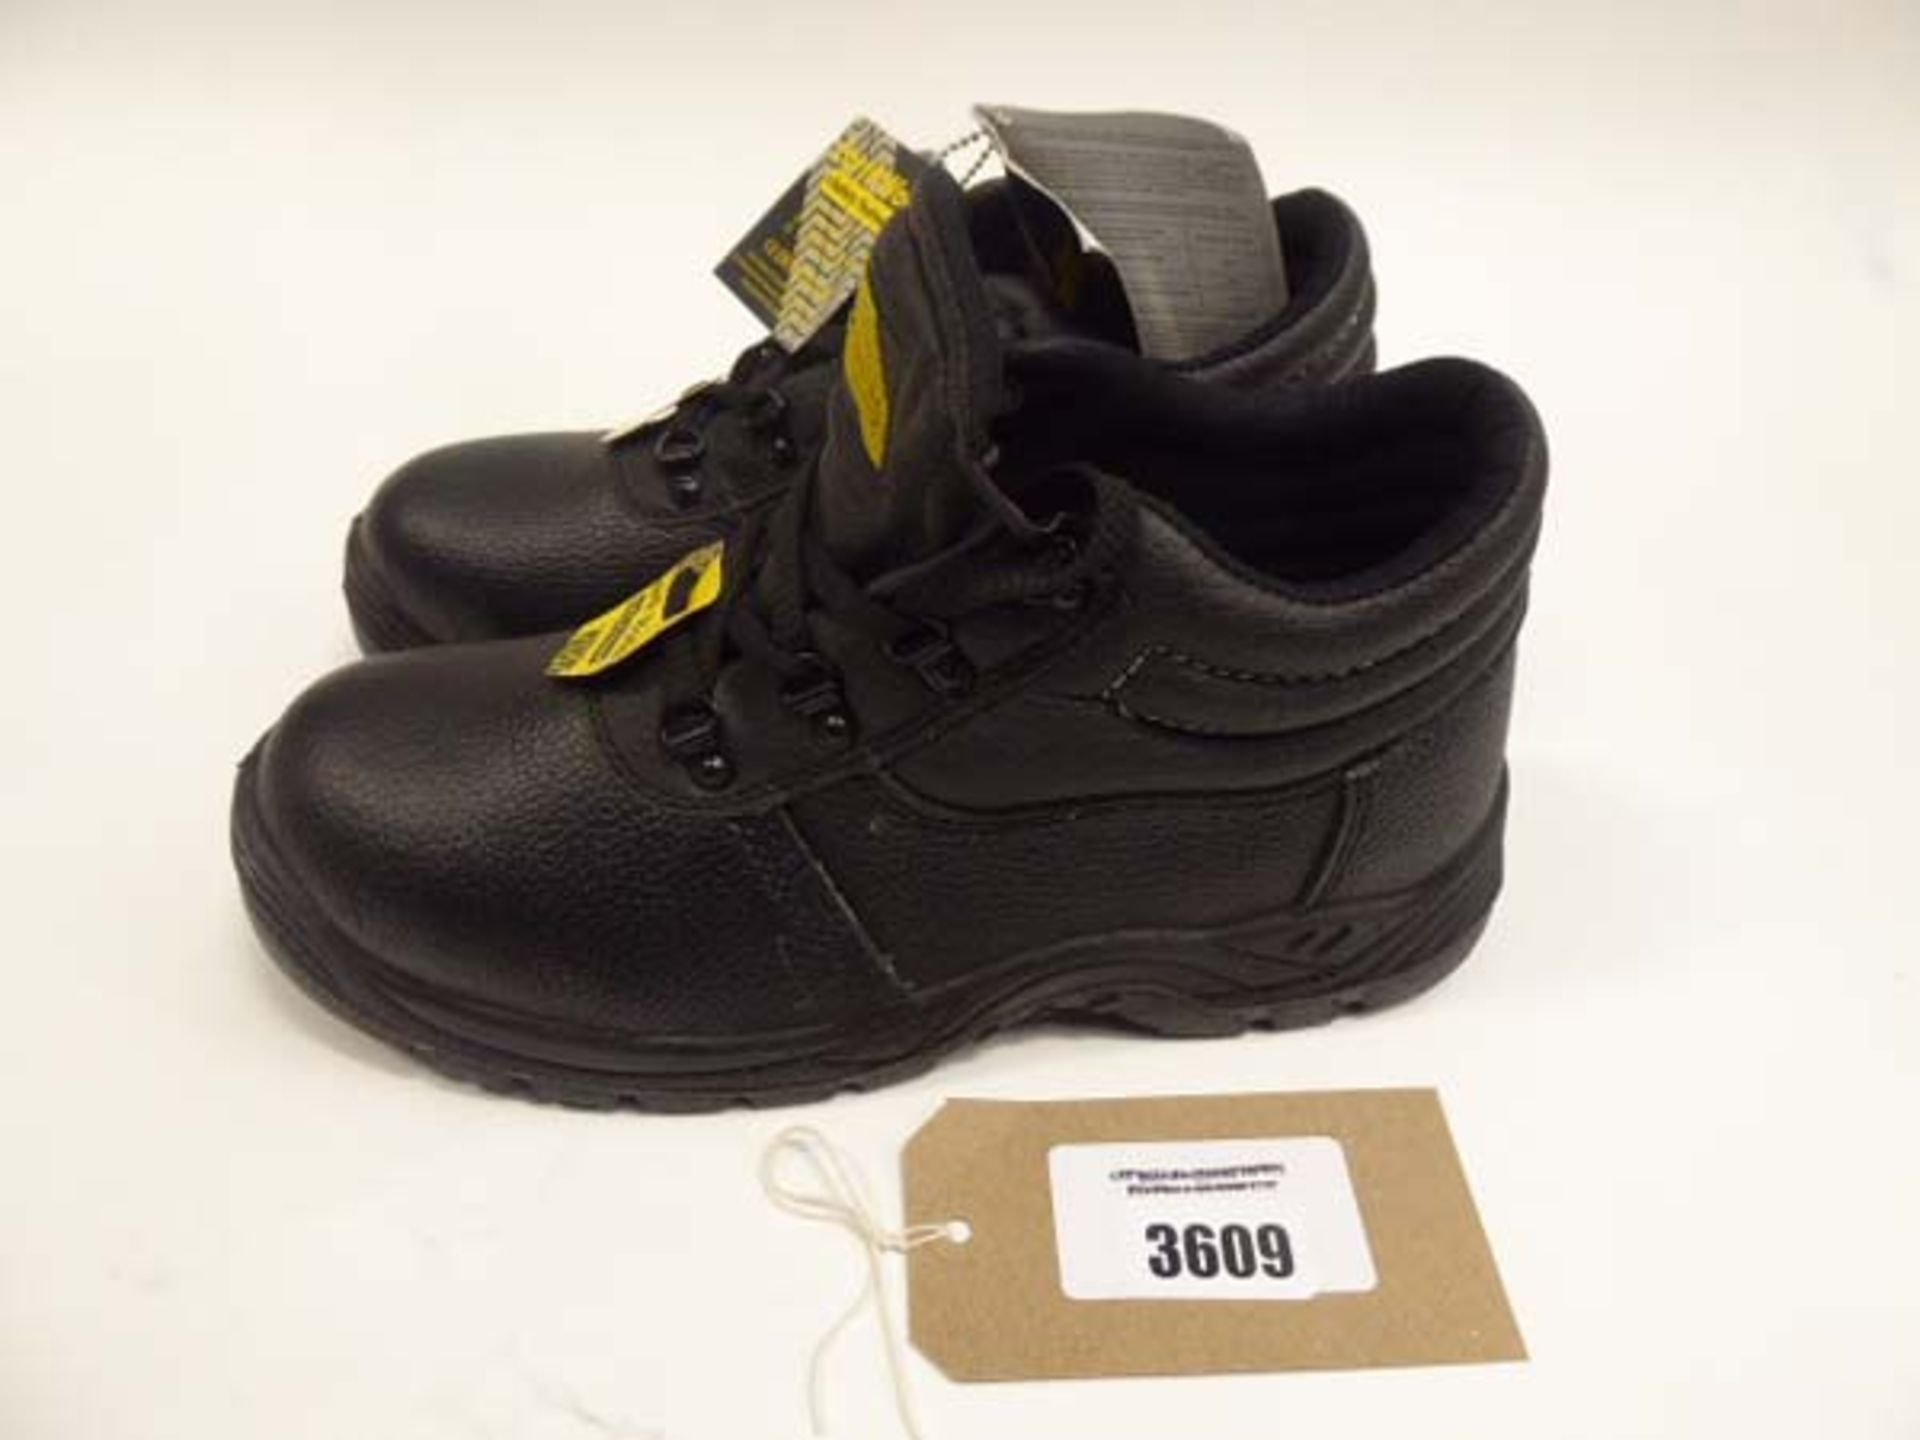 EarthWorks safety boots size 8